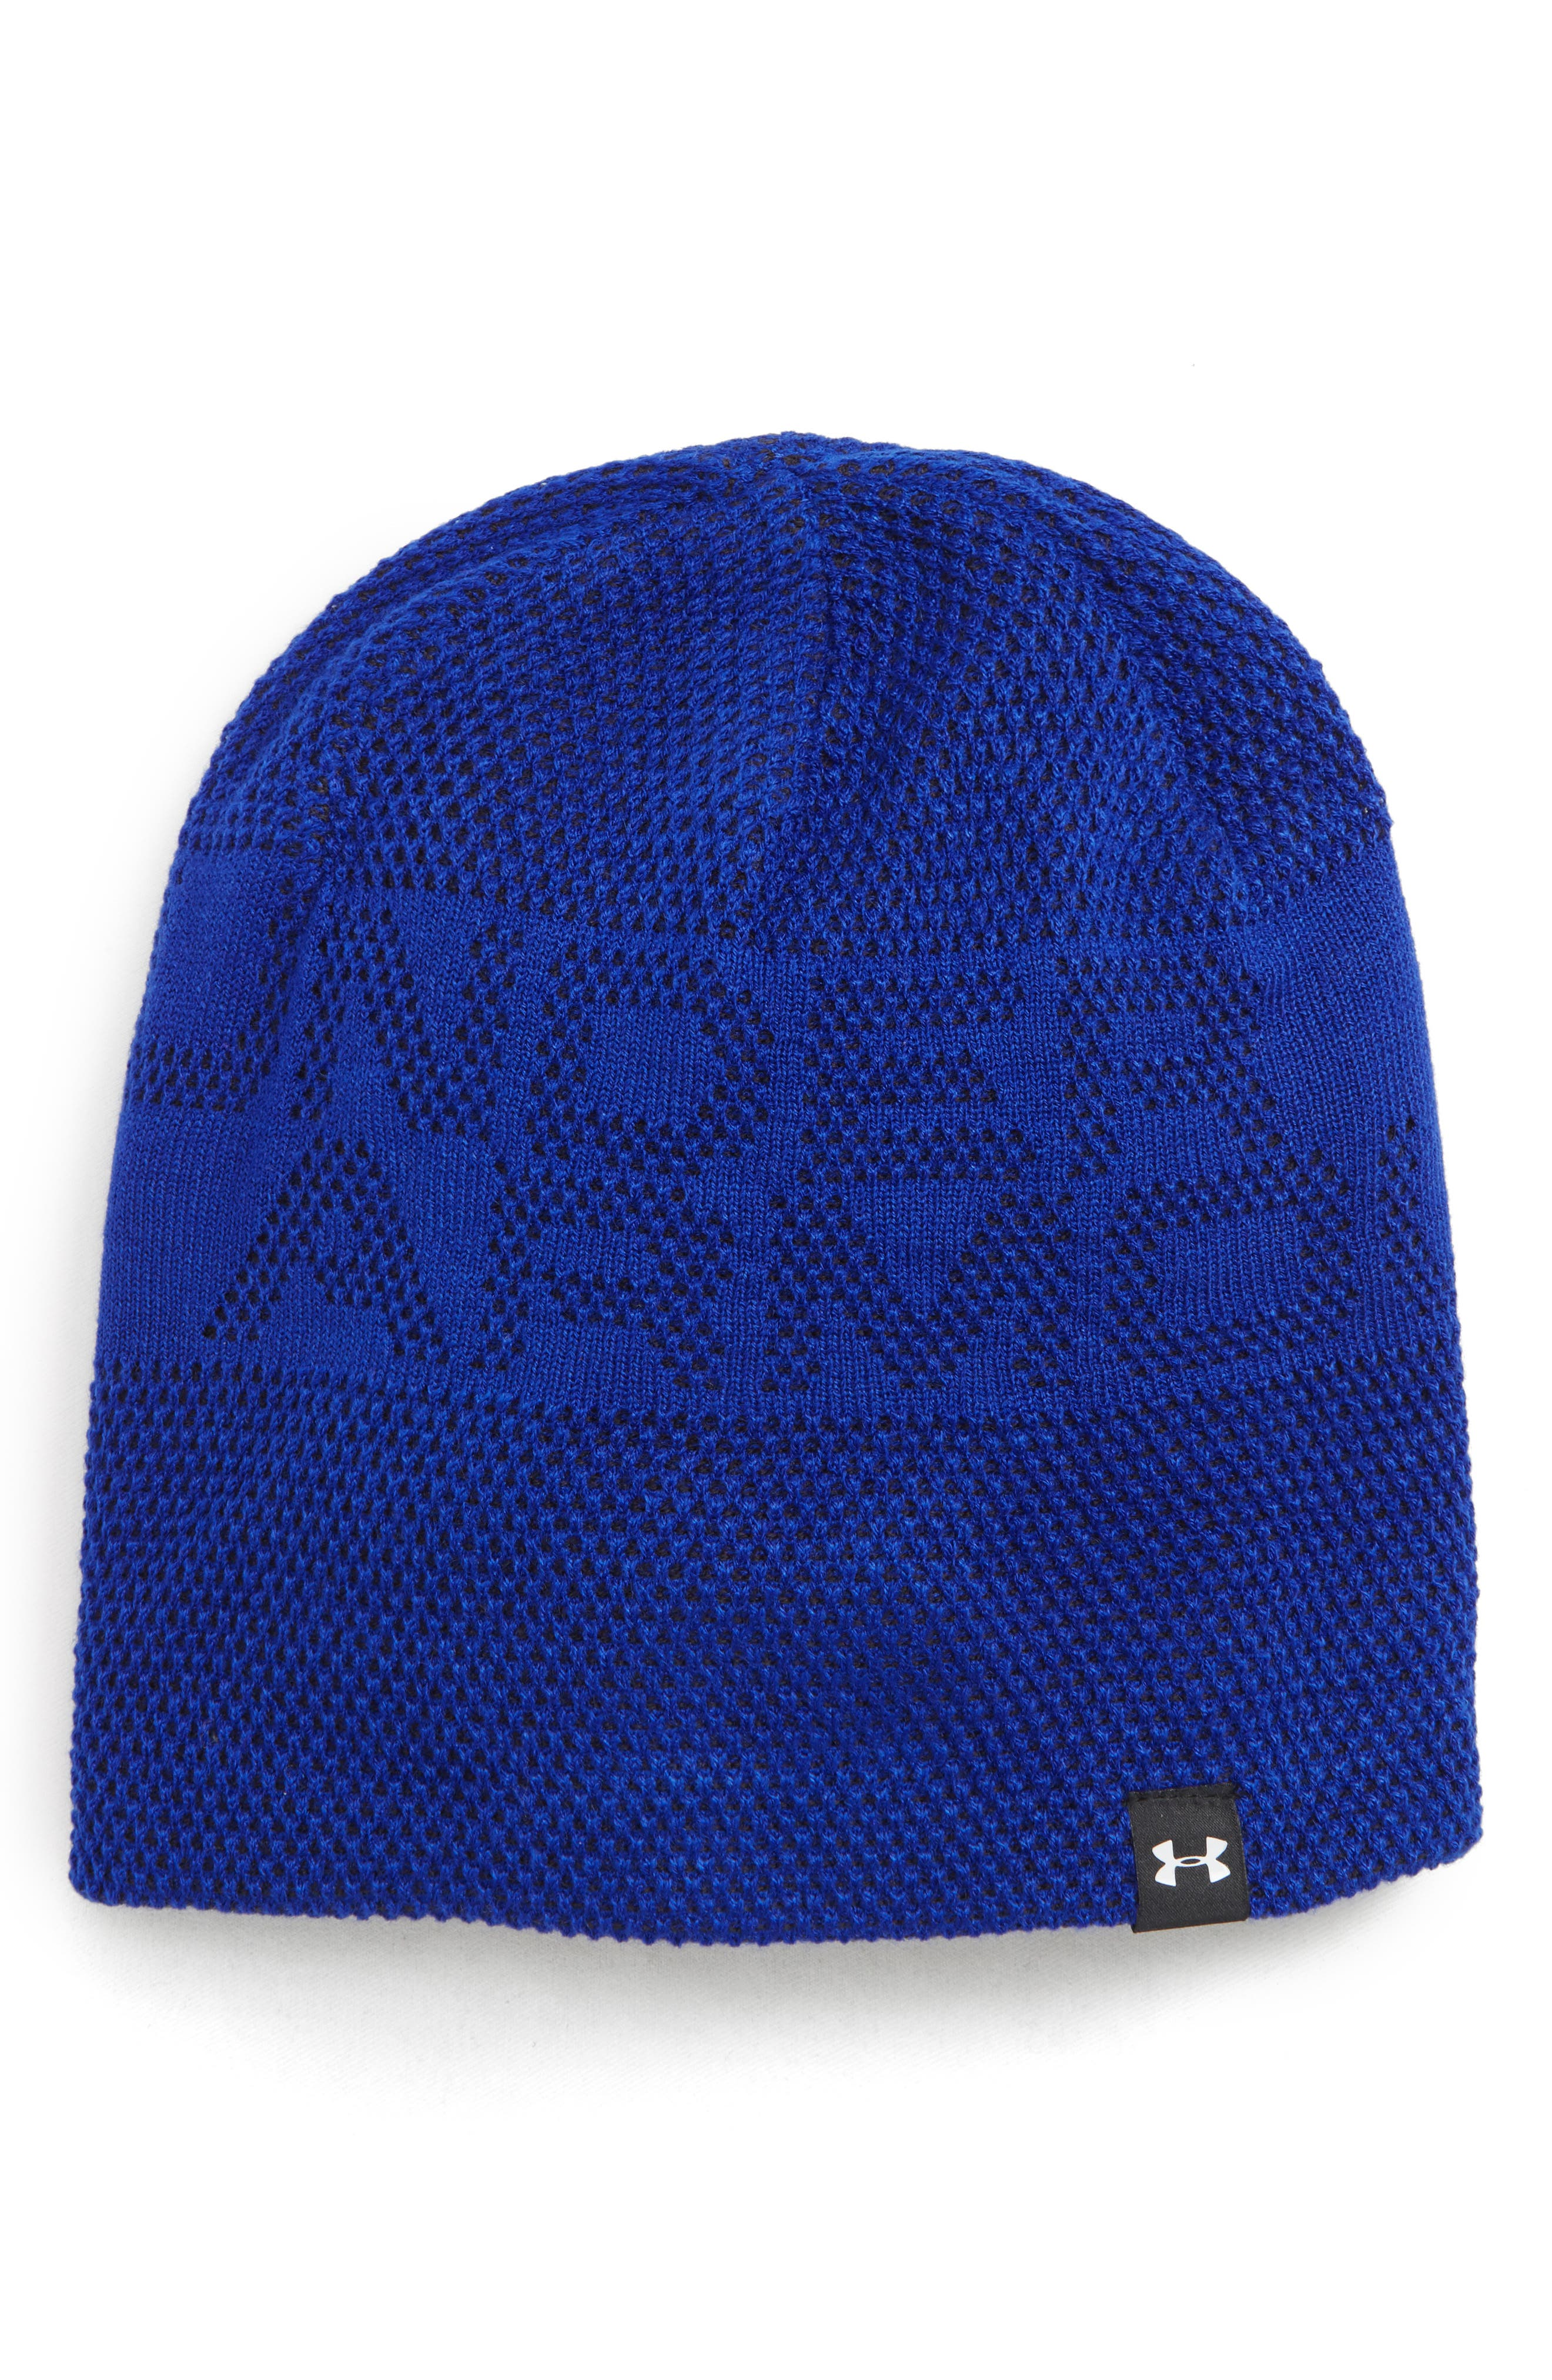 Boys Under Armour Coldgear Reversible Beanie